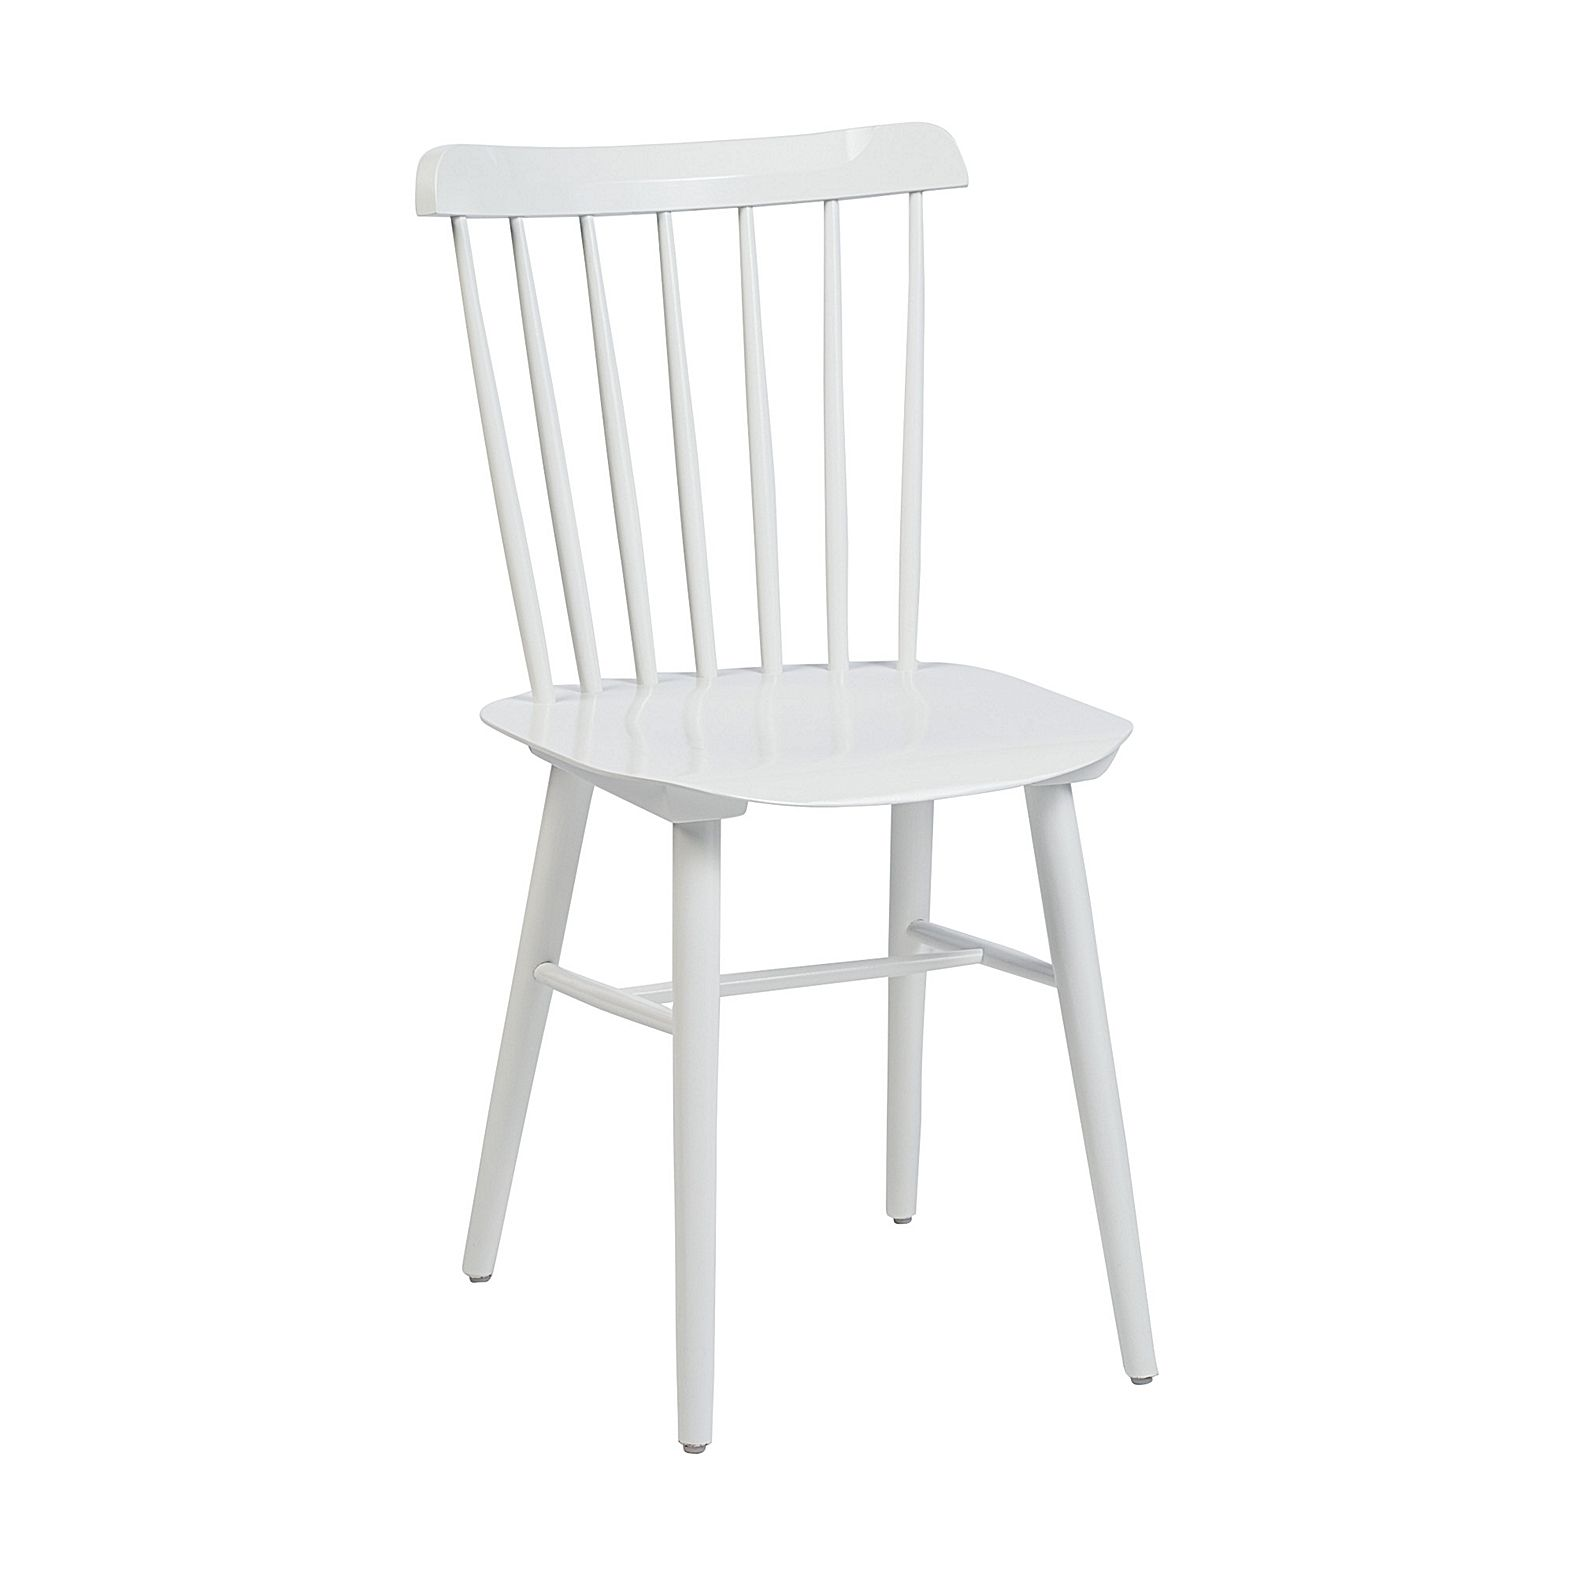 Tucker Chair u2013 White | Serena u0026 Lily  sc 1 st  Pinterest & Tucker Chair u2013 White | Serena u0026 Lily | Dining Rooms | Pinterest ...